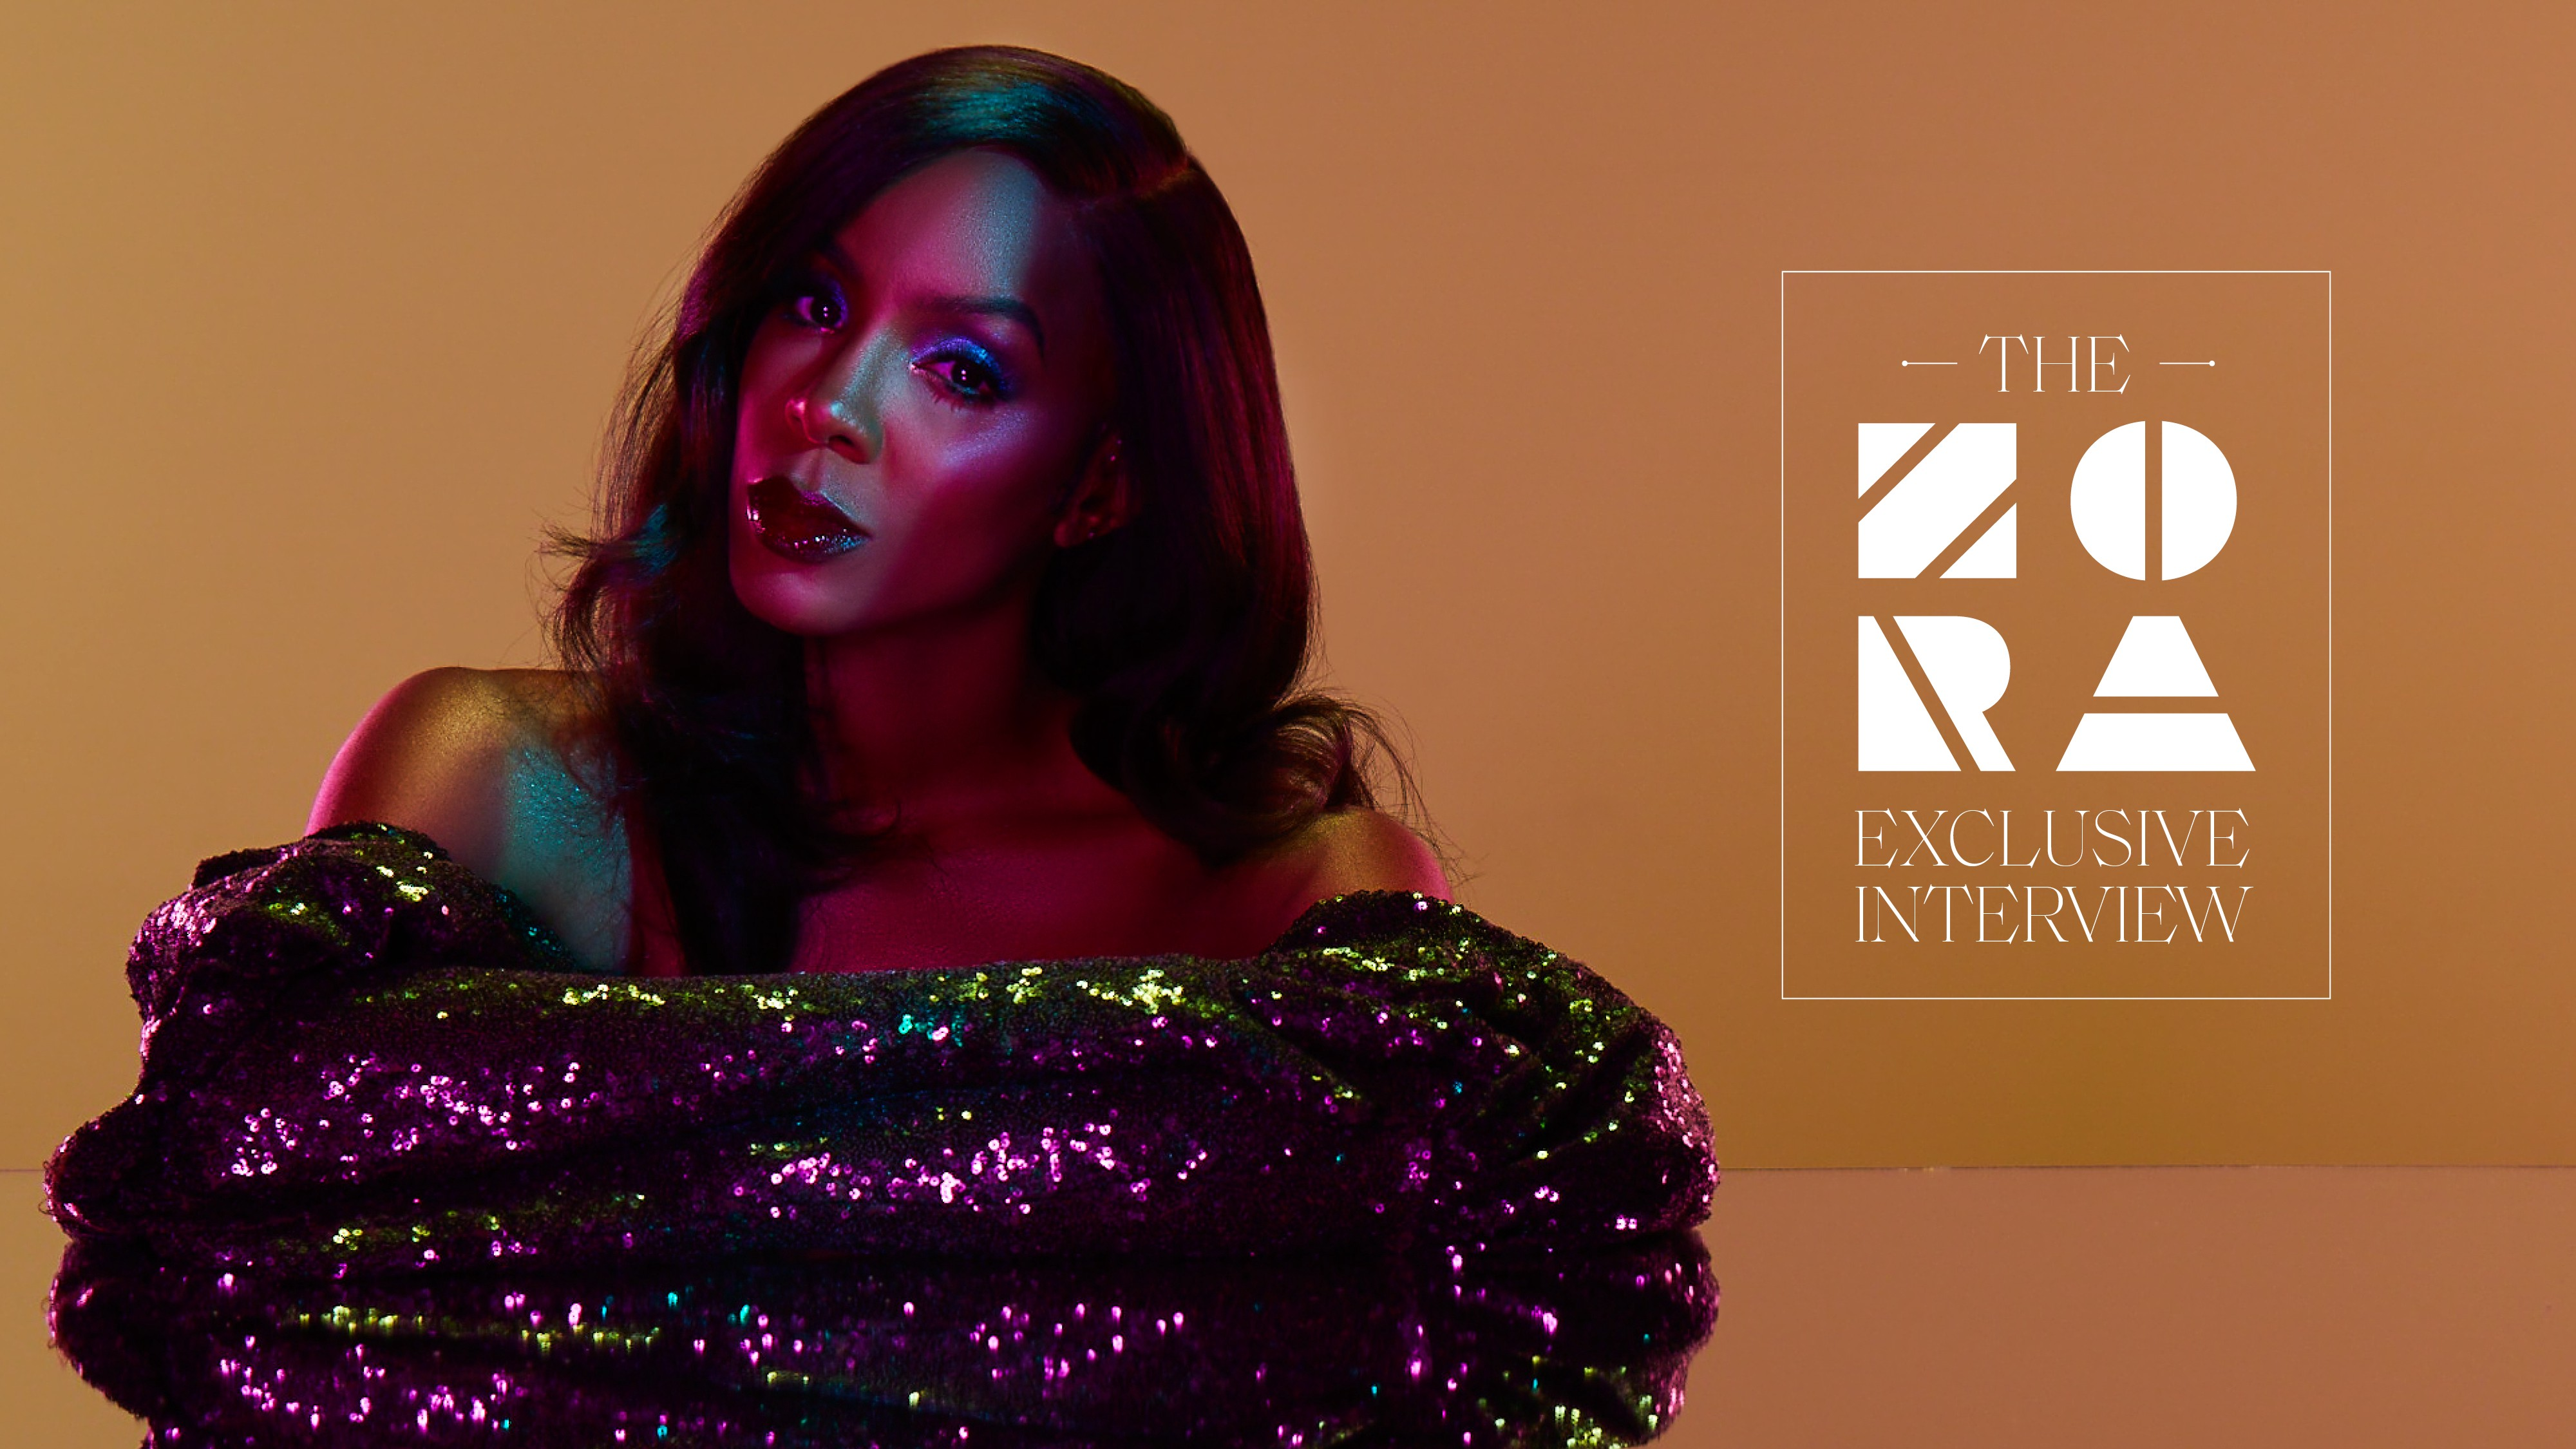 """Photo of Kelly Rowland with a logo that says """"THE ZORA EXCLUSIVE INTERVIEW"""" on the right."""